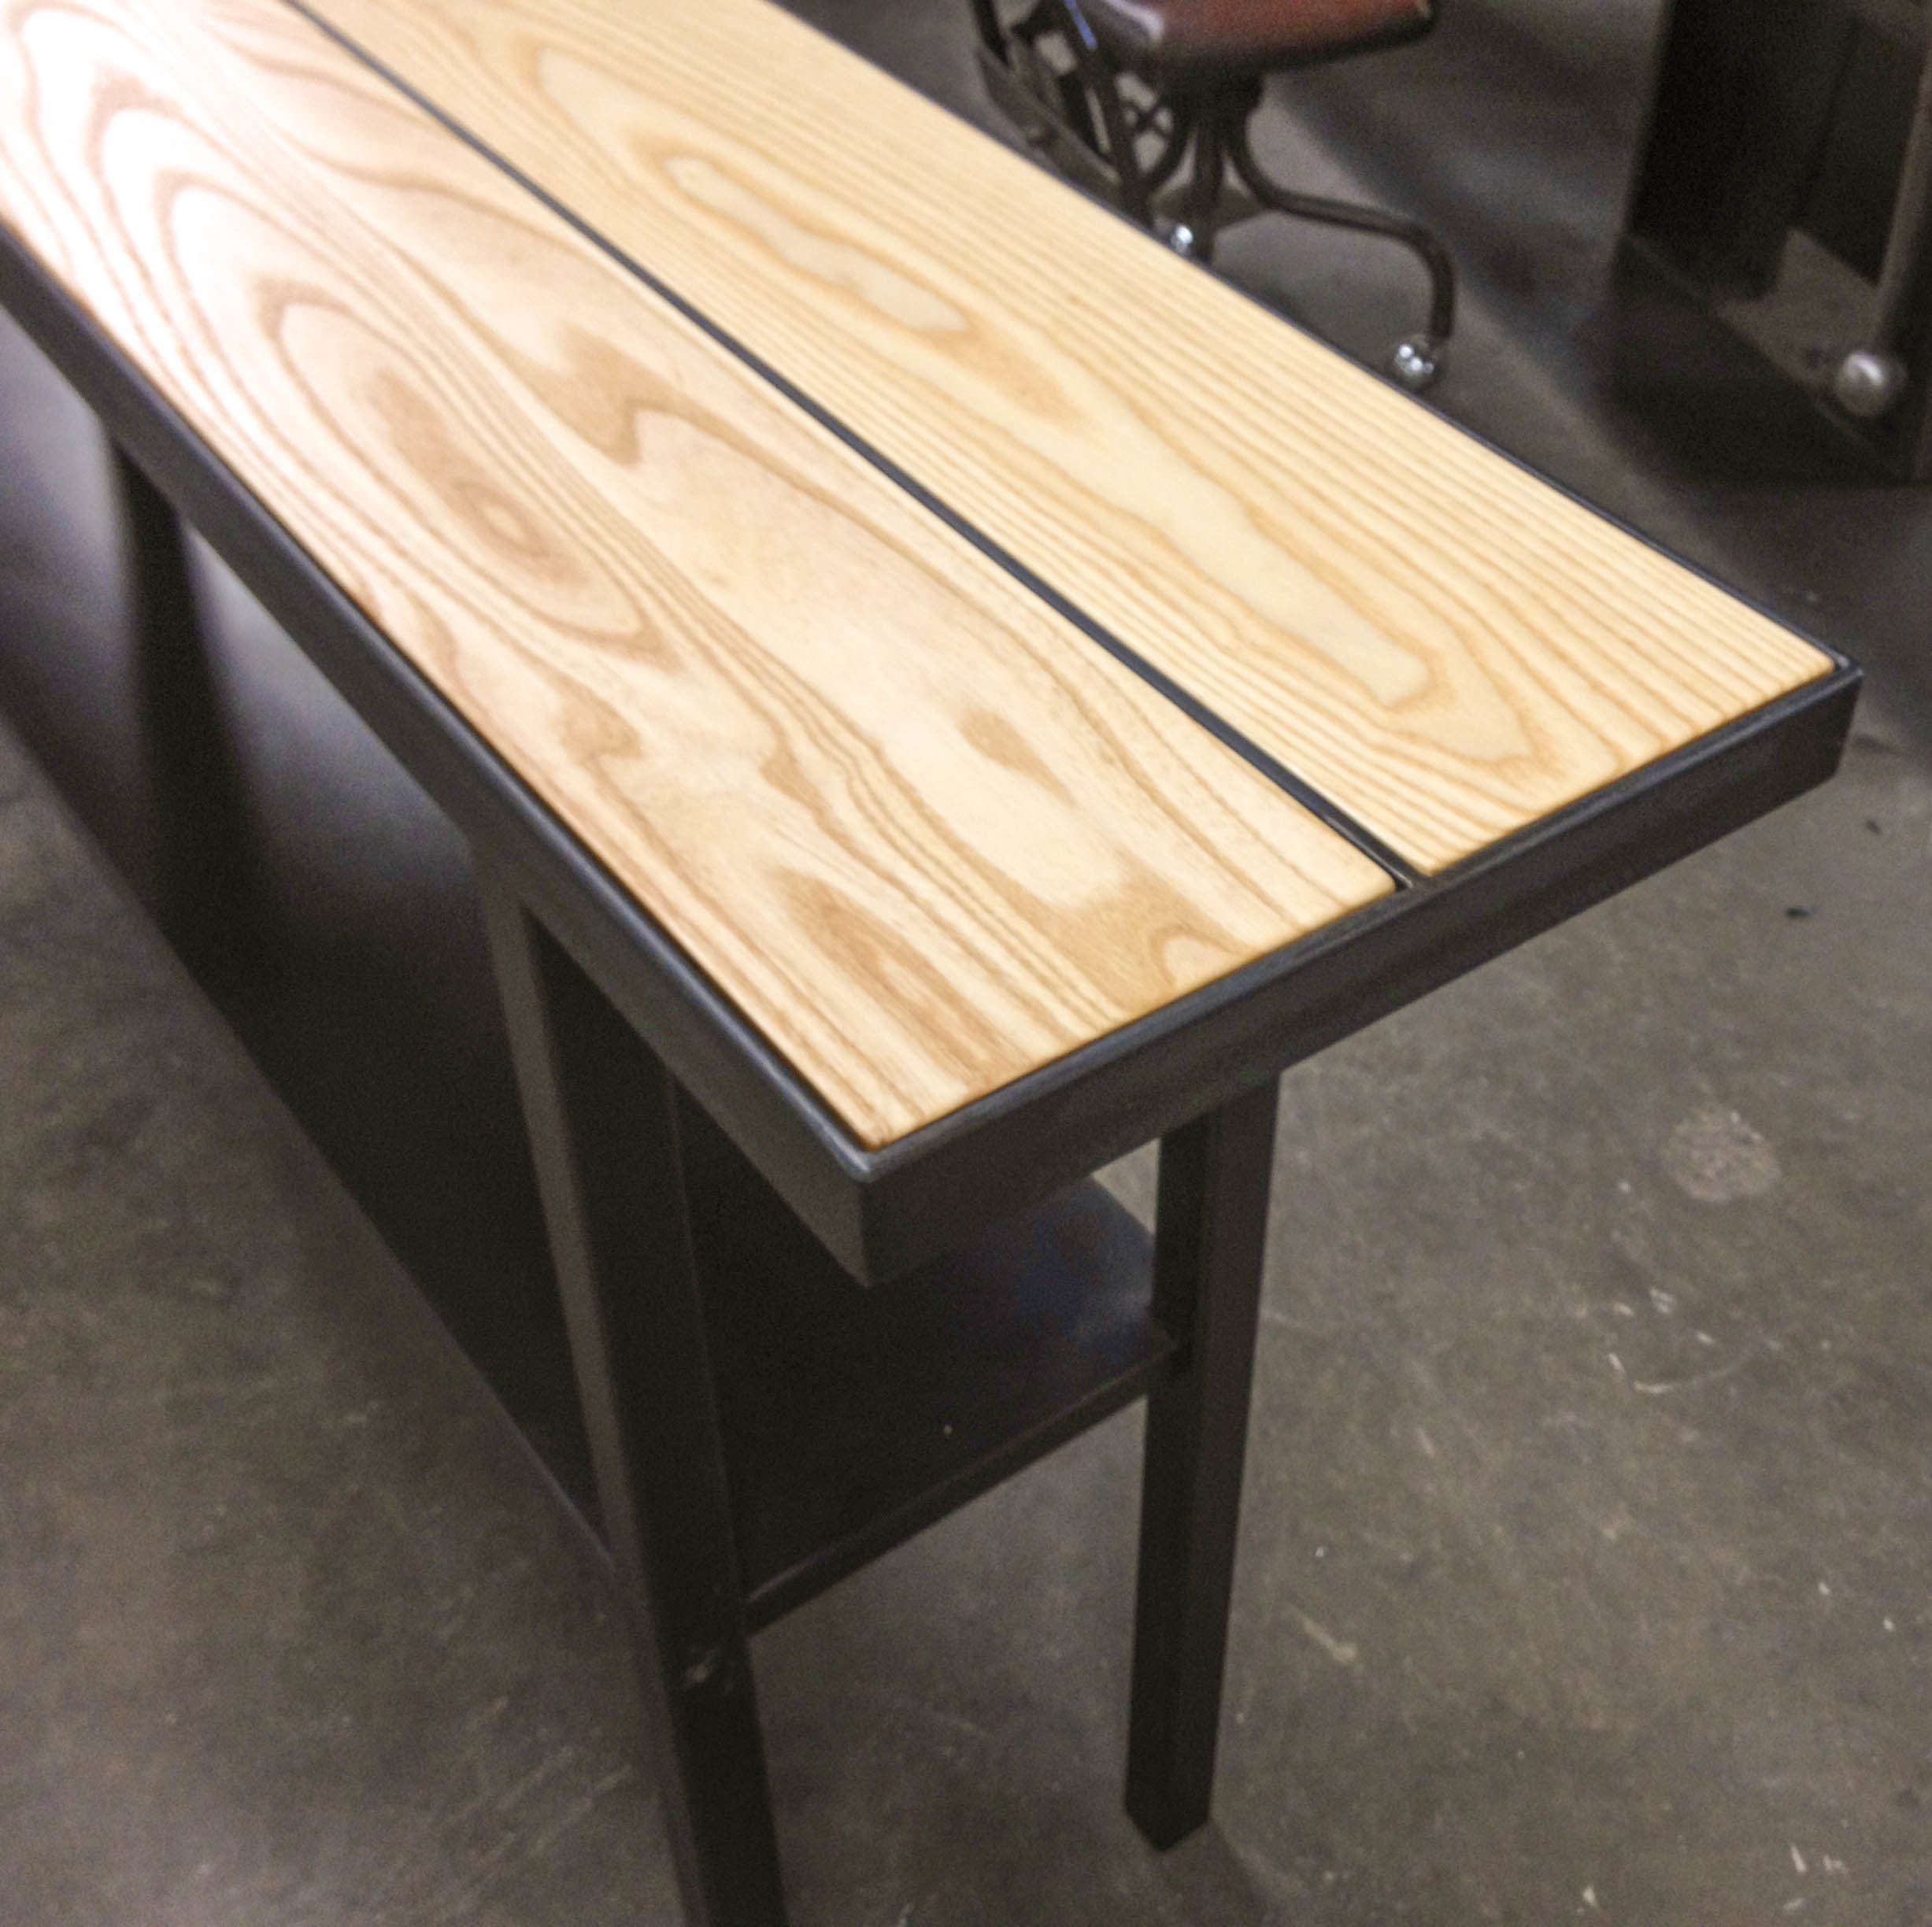 long-thin table-4.jpg